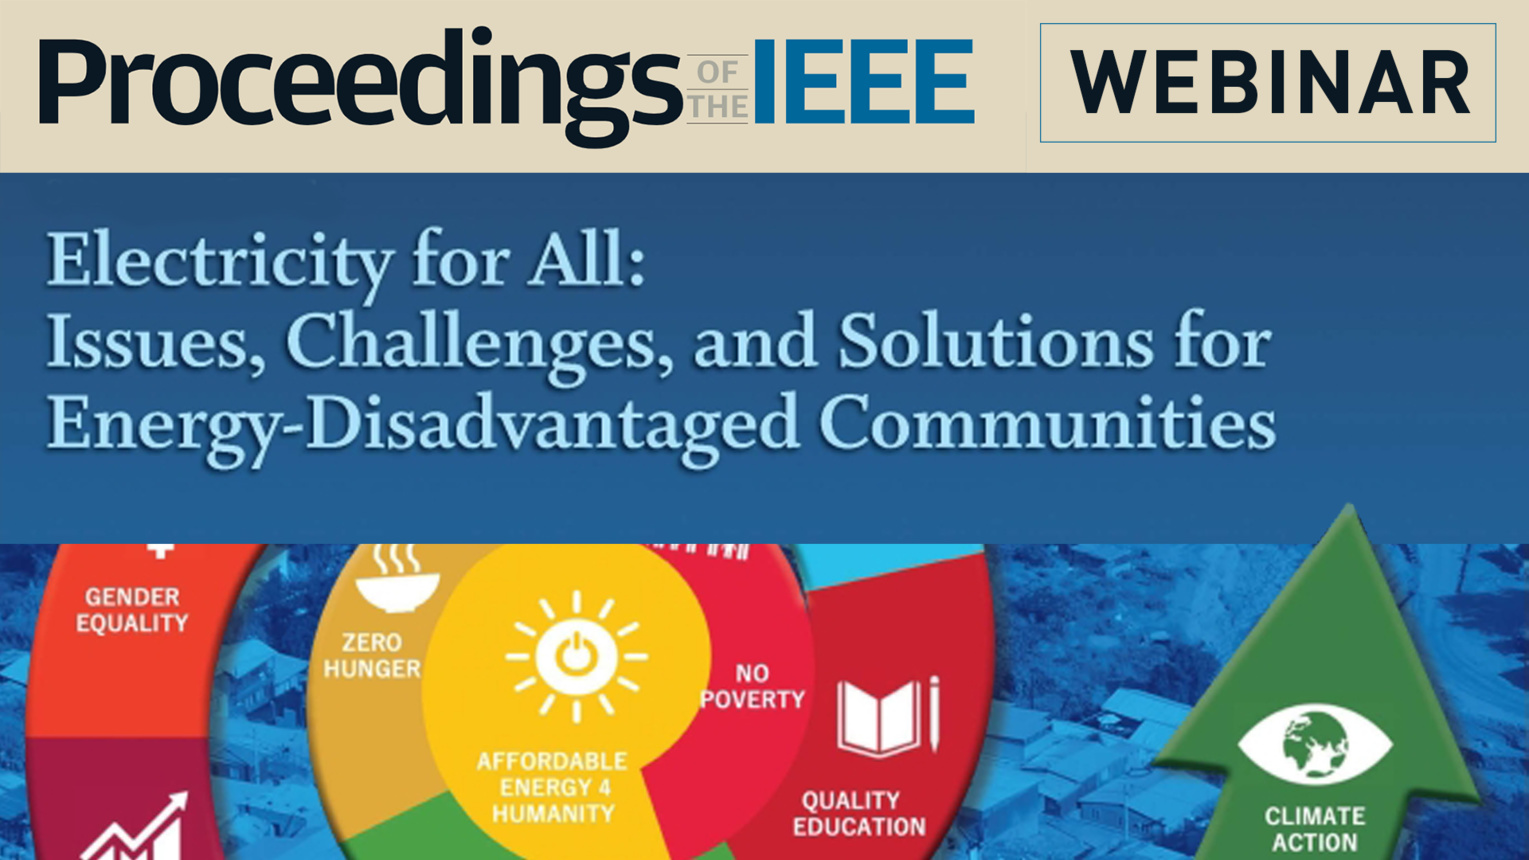 Electricity for All - Proceedings of the IEEE Webinar